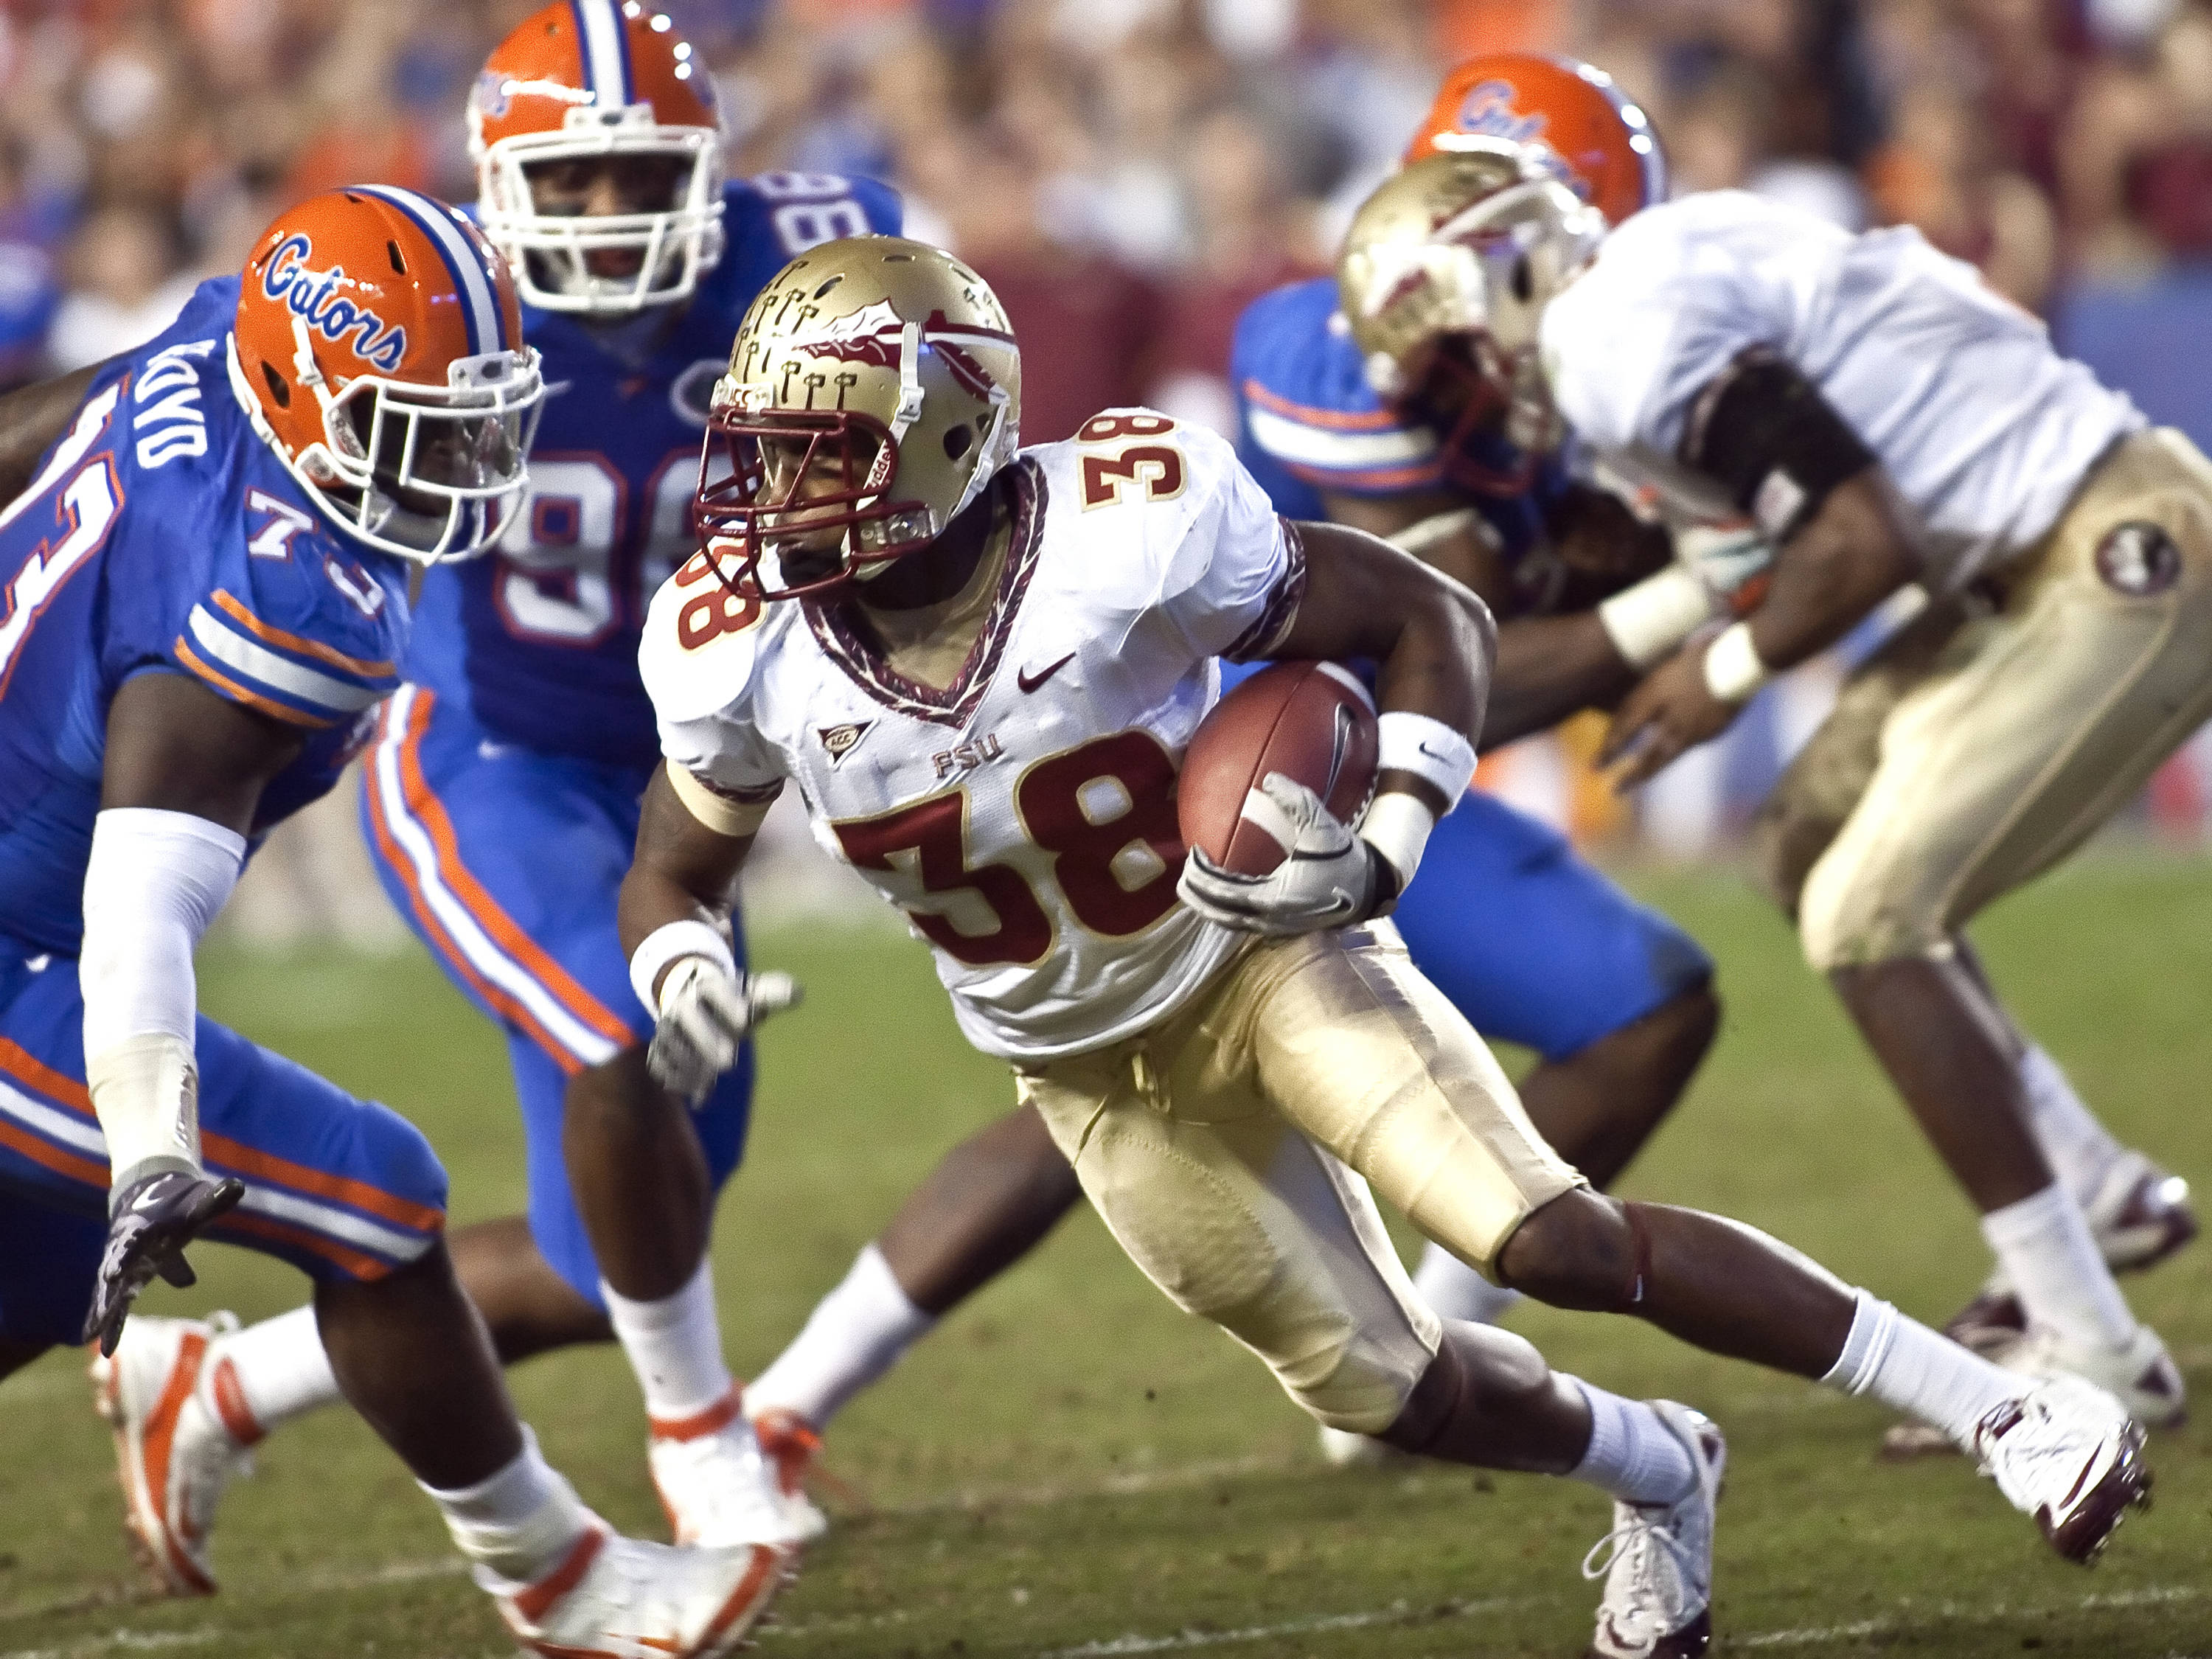 Jermaine Thomas (38) reversing his run, FSU vs Florida, 11/26/2011